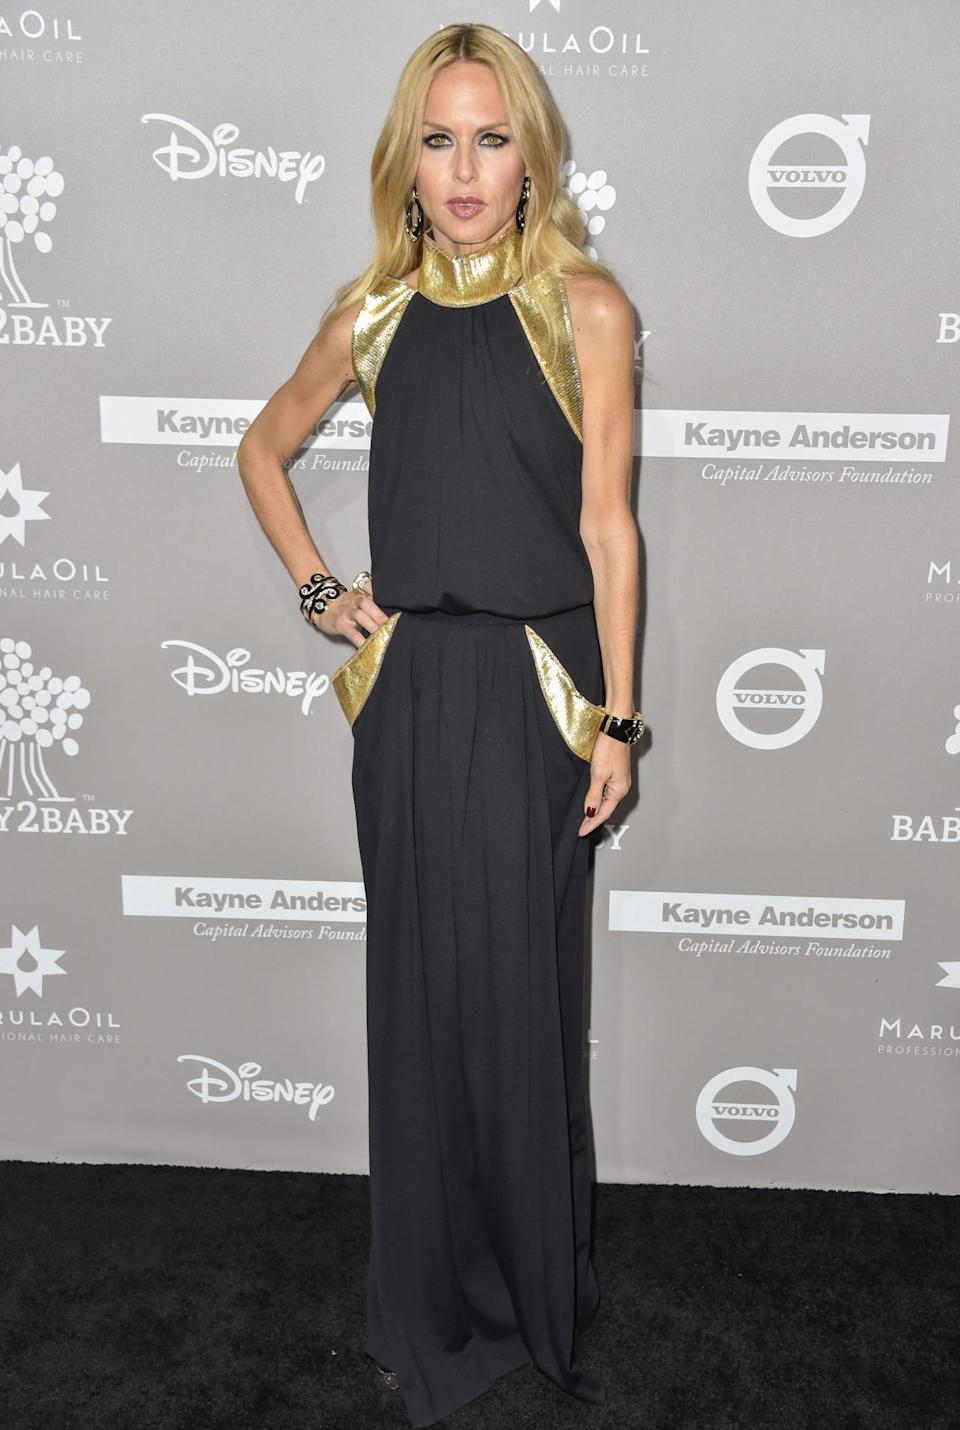 Stylist-to-the-stars Rachel Zoe, a mum of two, opted for a black and gold gown and a pair of statement wrist cuffs. [Photo: Rex]